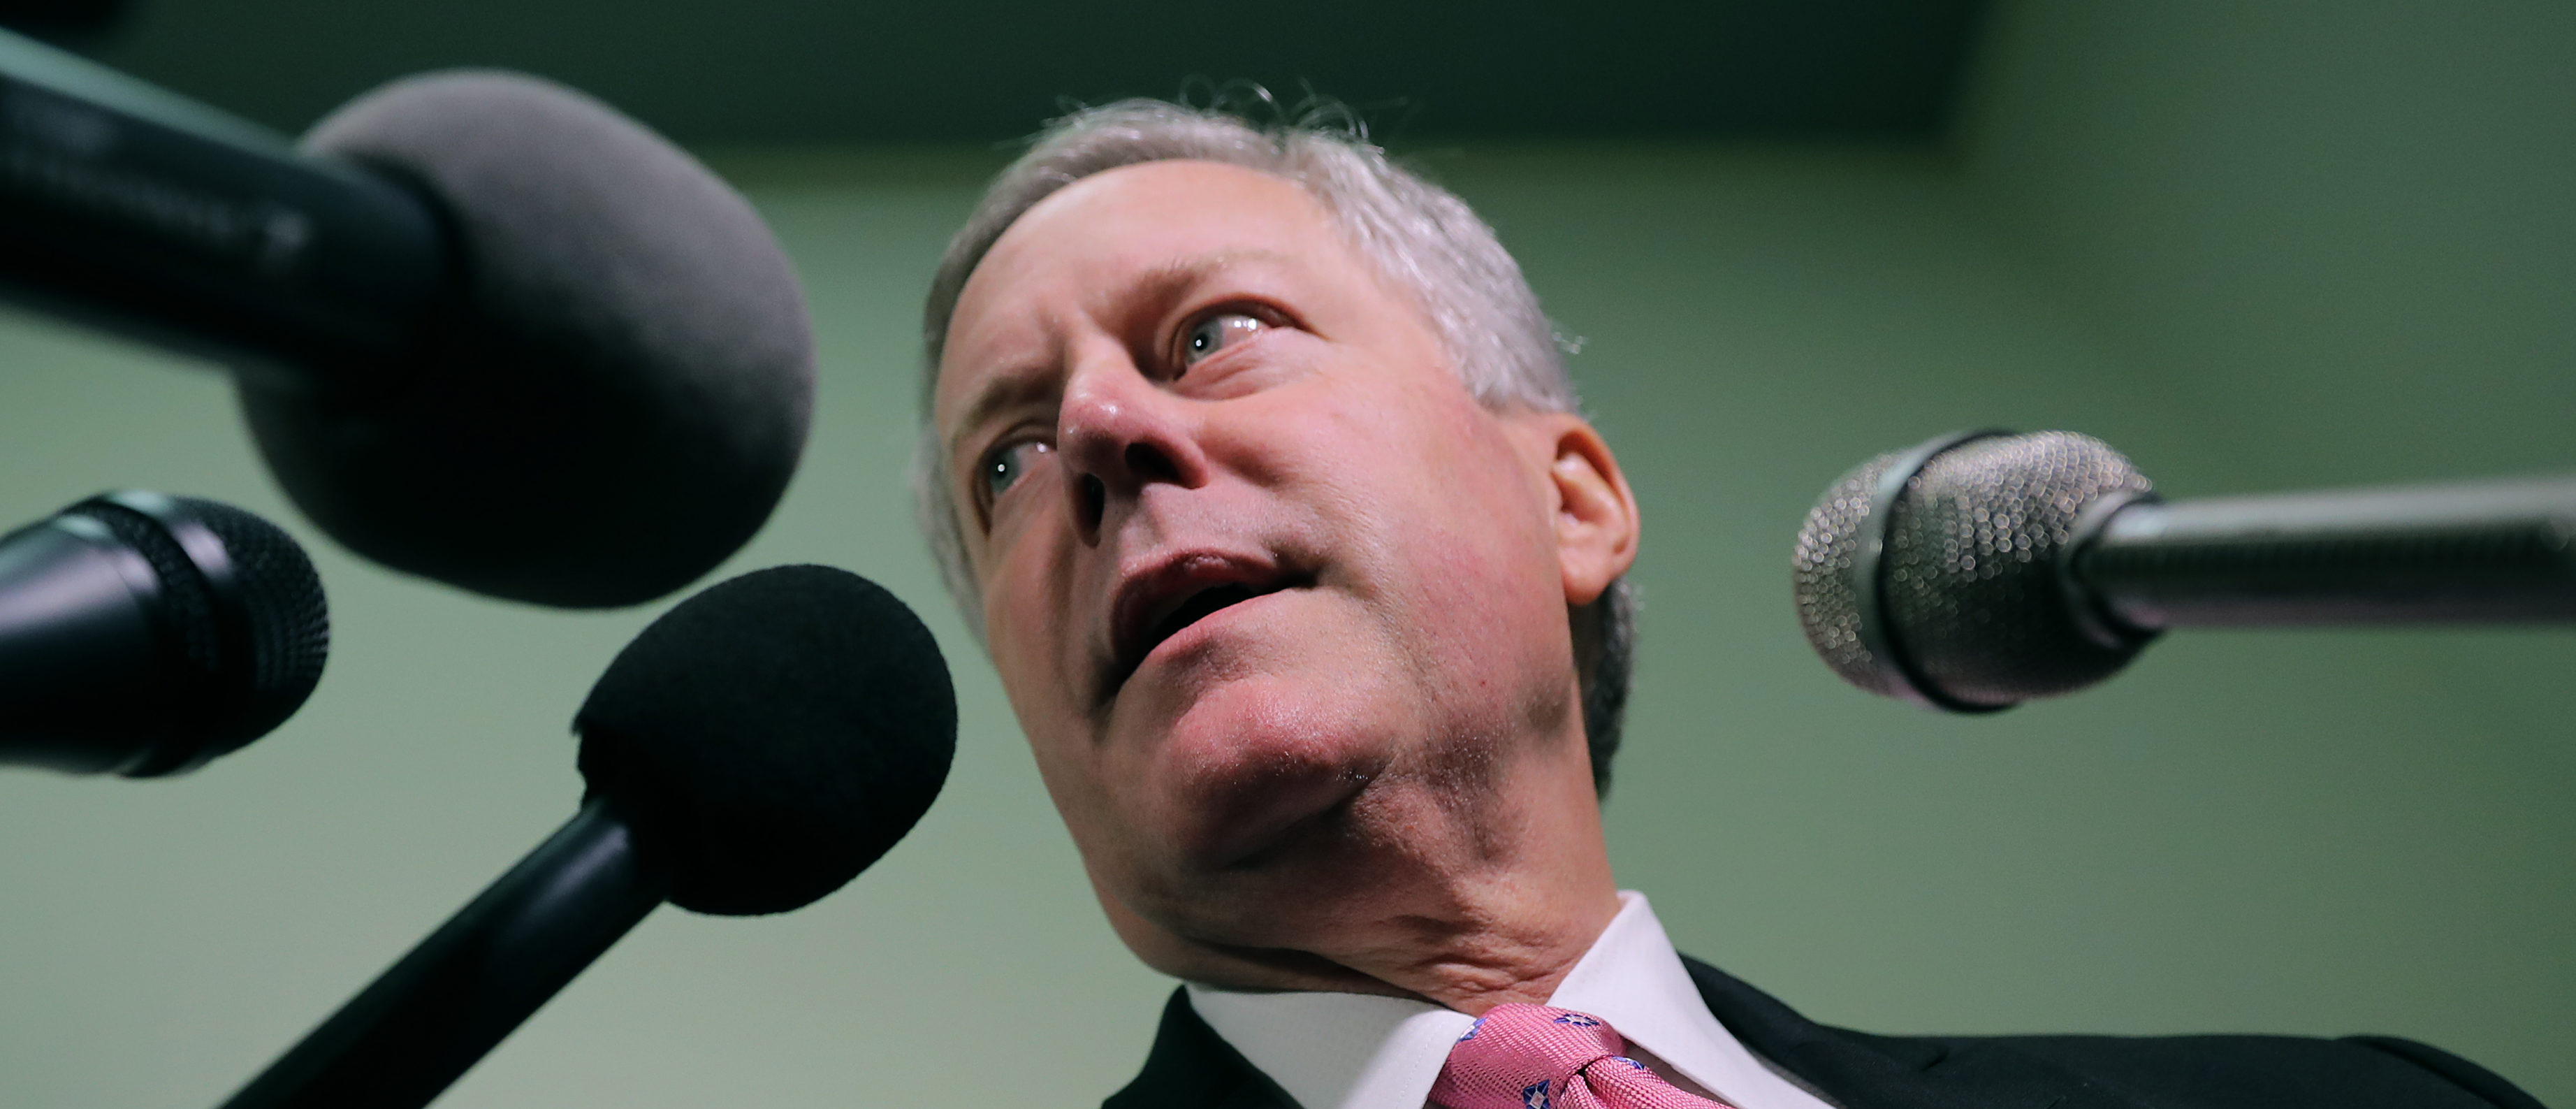 House Oversight and Government Reform Committee member Rep. Mark Meadows (R-NC) talks with reporters in the Rayburn House Office Building on Capitol Hill October 19, 2018 in Washington, DC. Chip Somodevilla/Getty Images